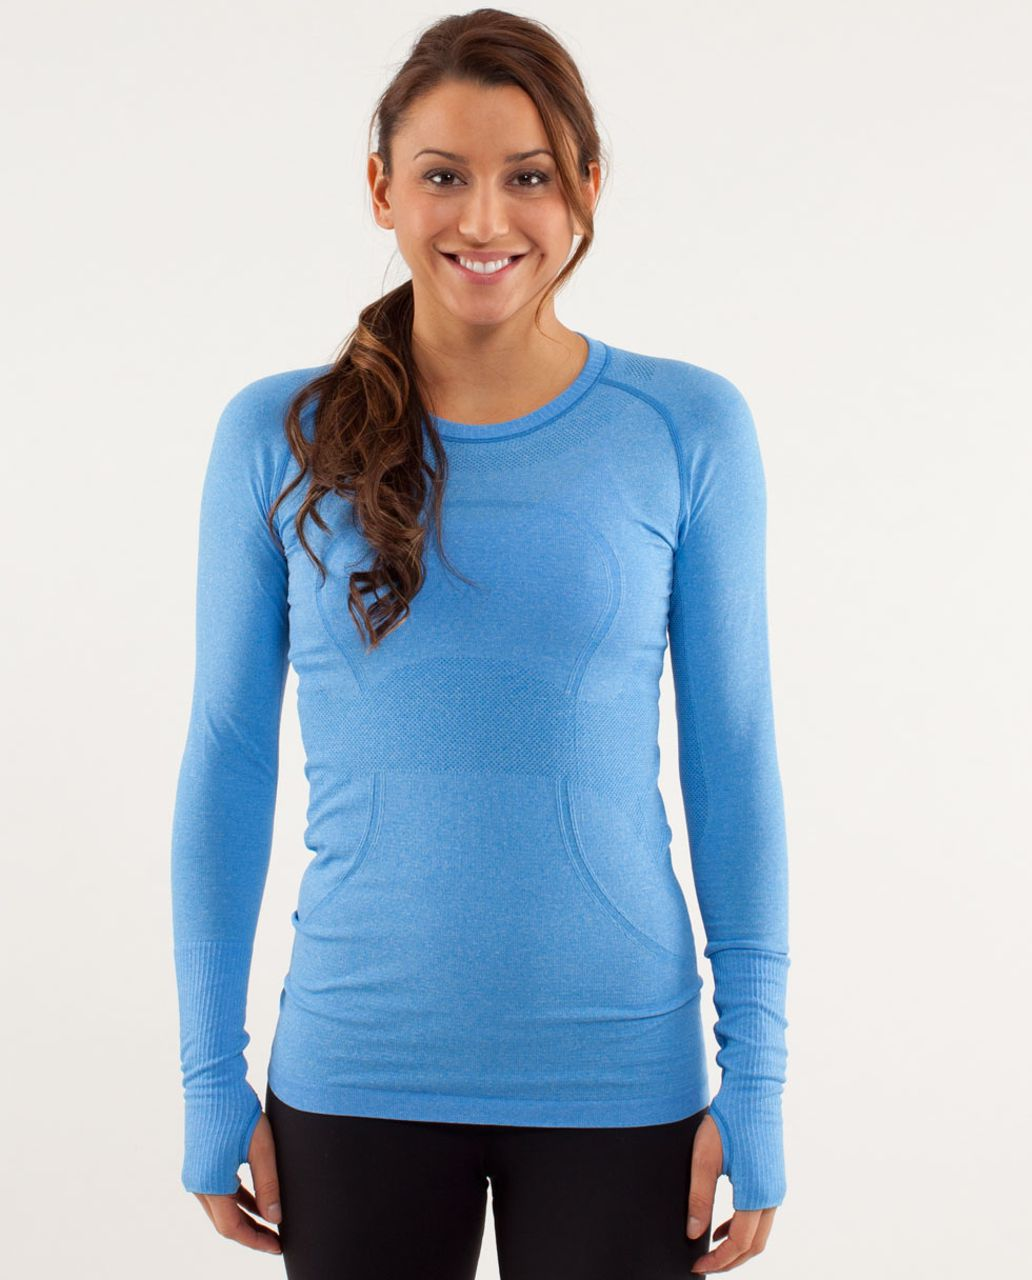 c0af8af5396f0 Lululemon Run  Swiftly Tech Long Sleeve - Beaming Blue - lulu fanatics